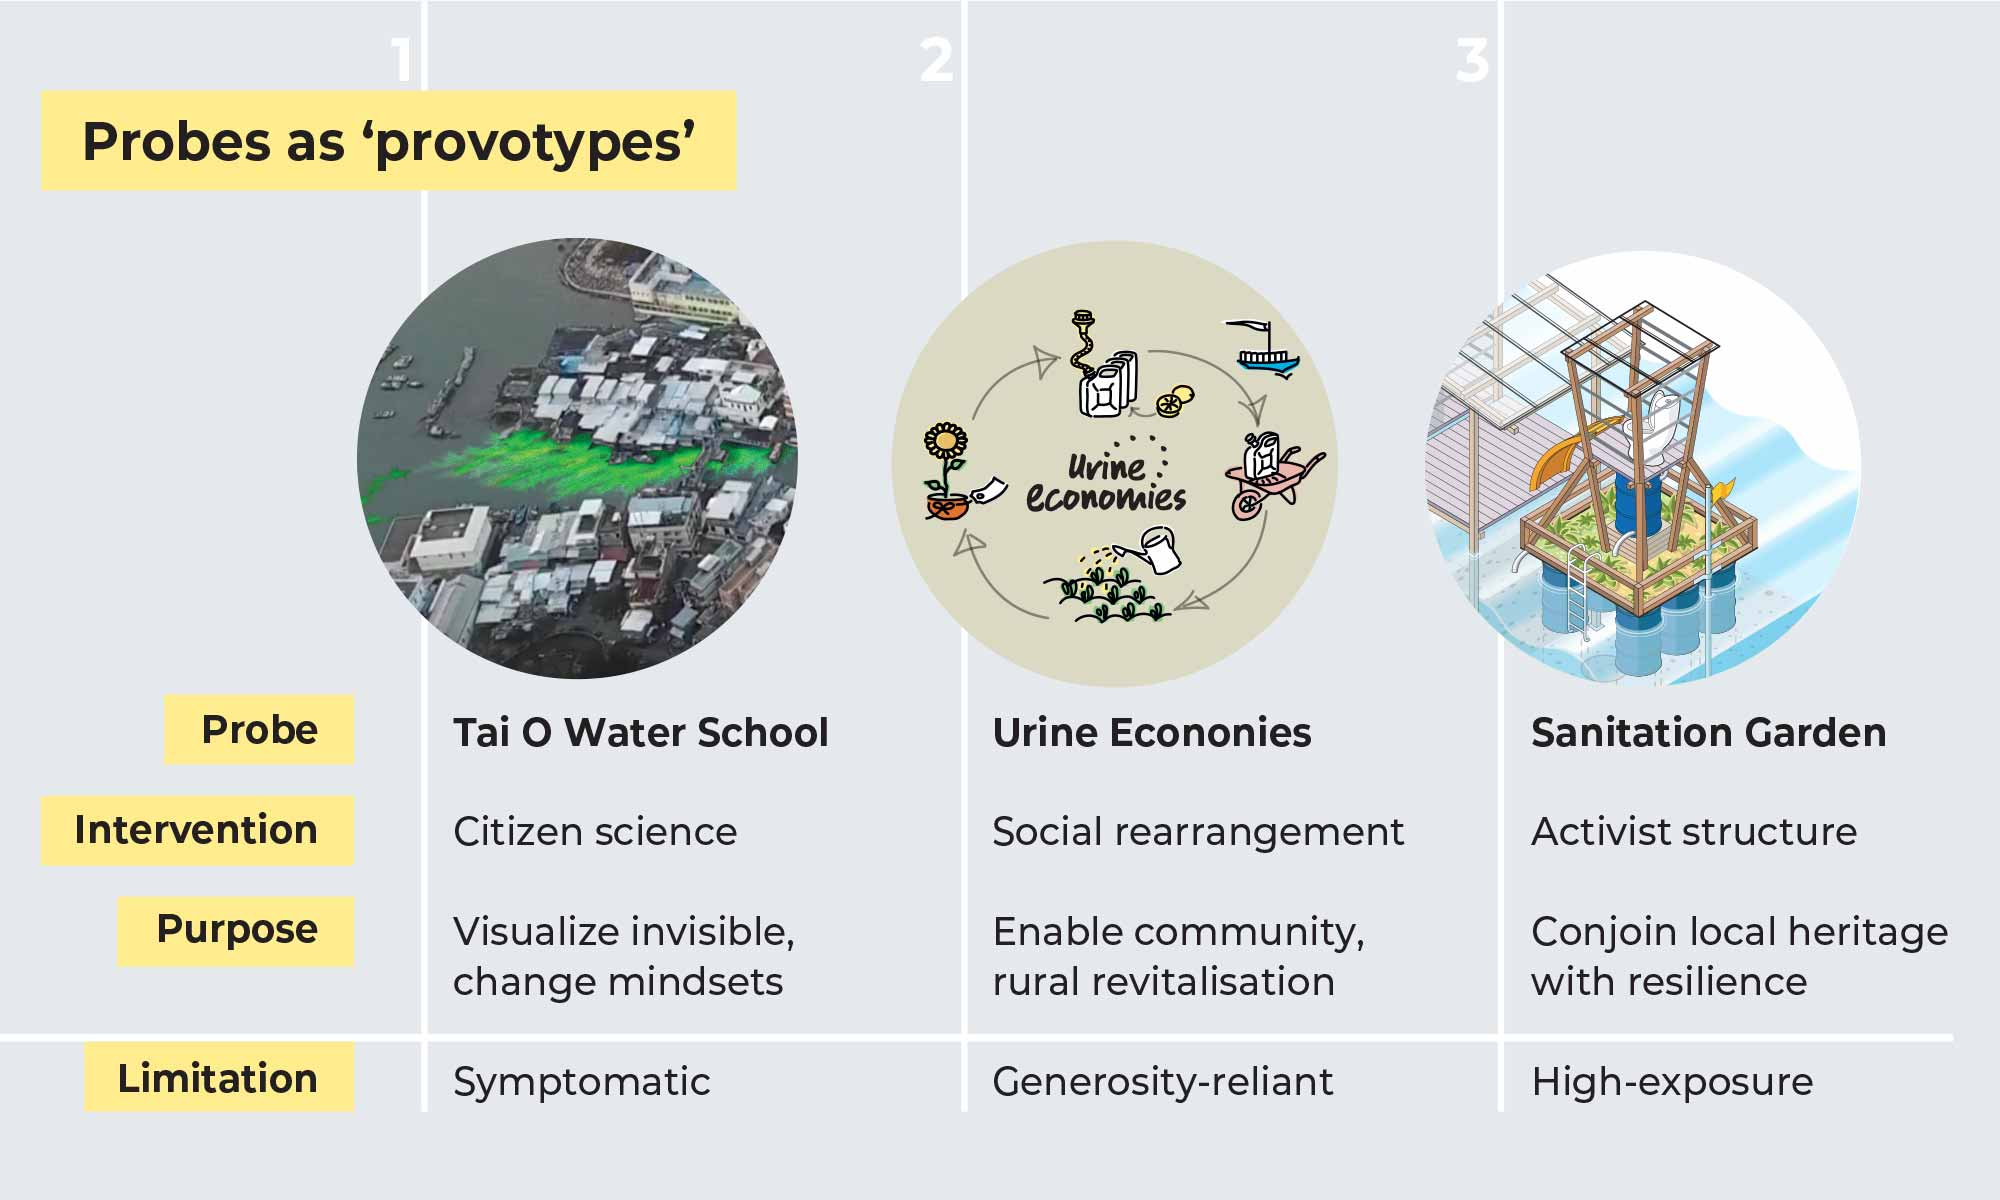 Overview of probes (provotypes)